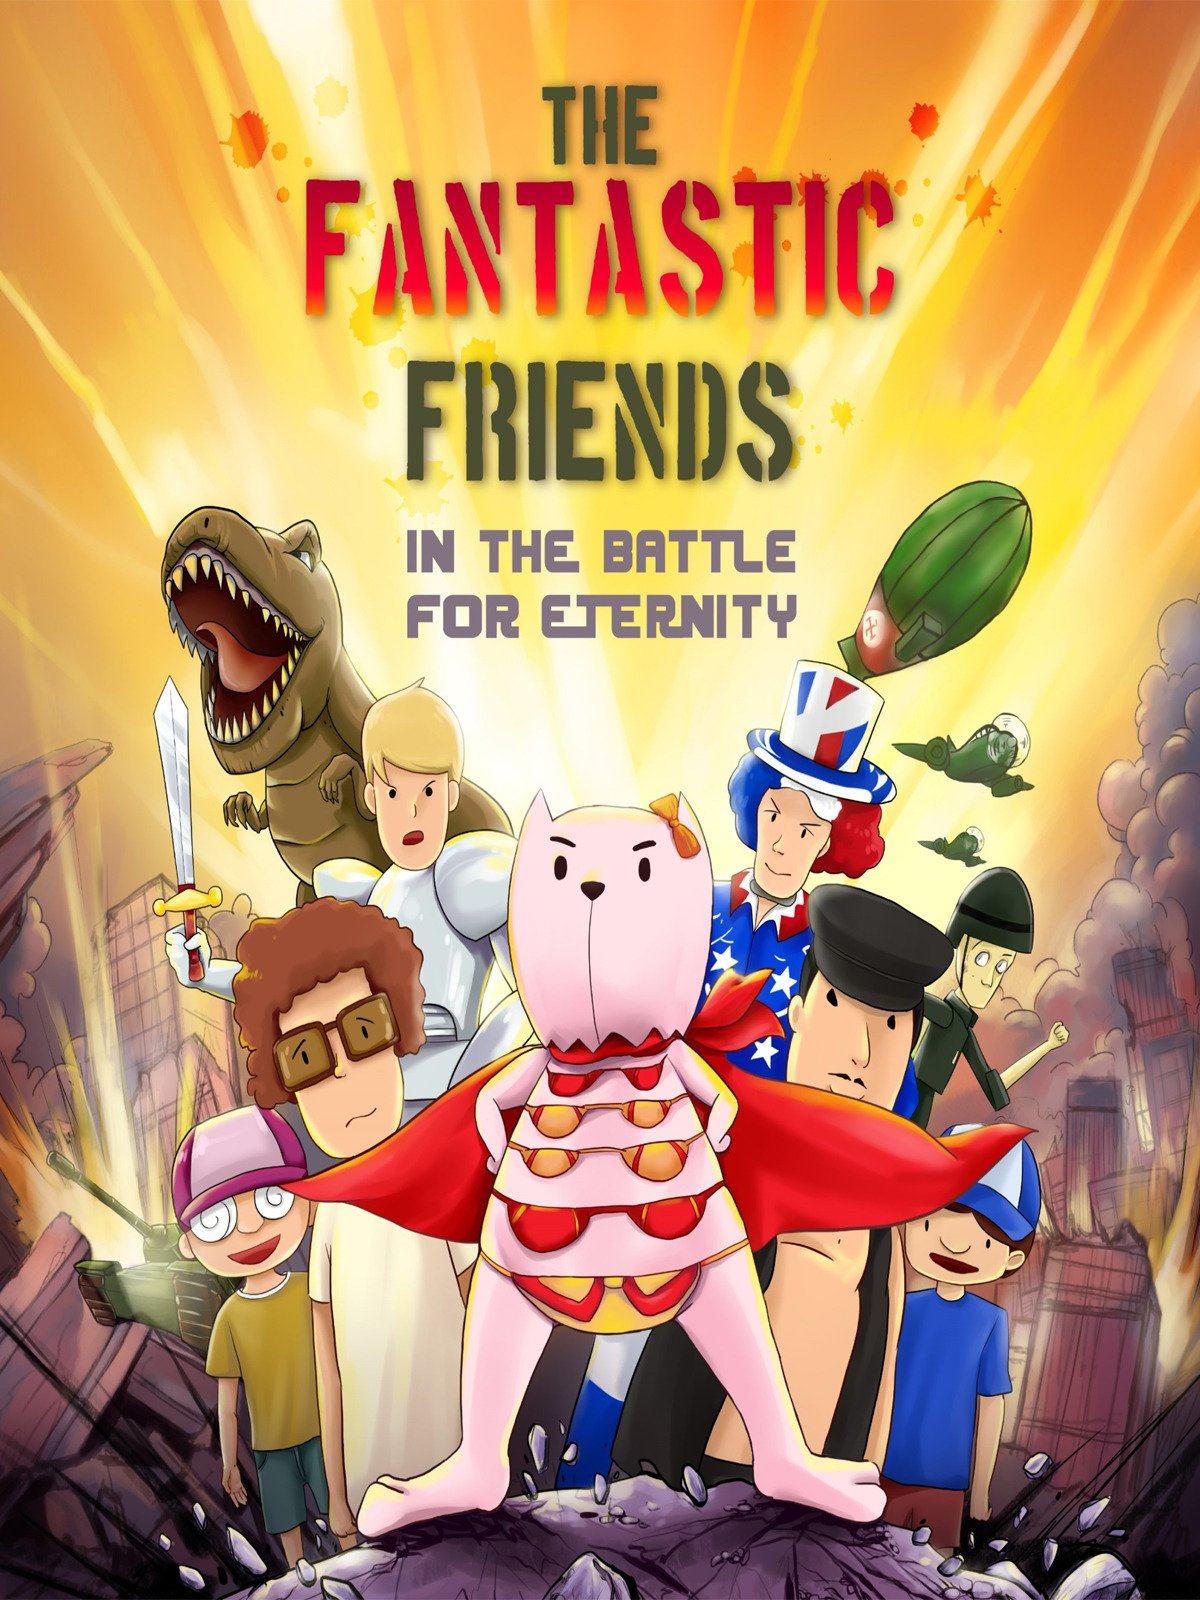 The Fantastic Friends In The Battle For Eternity